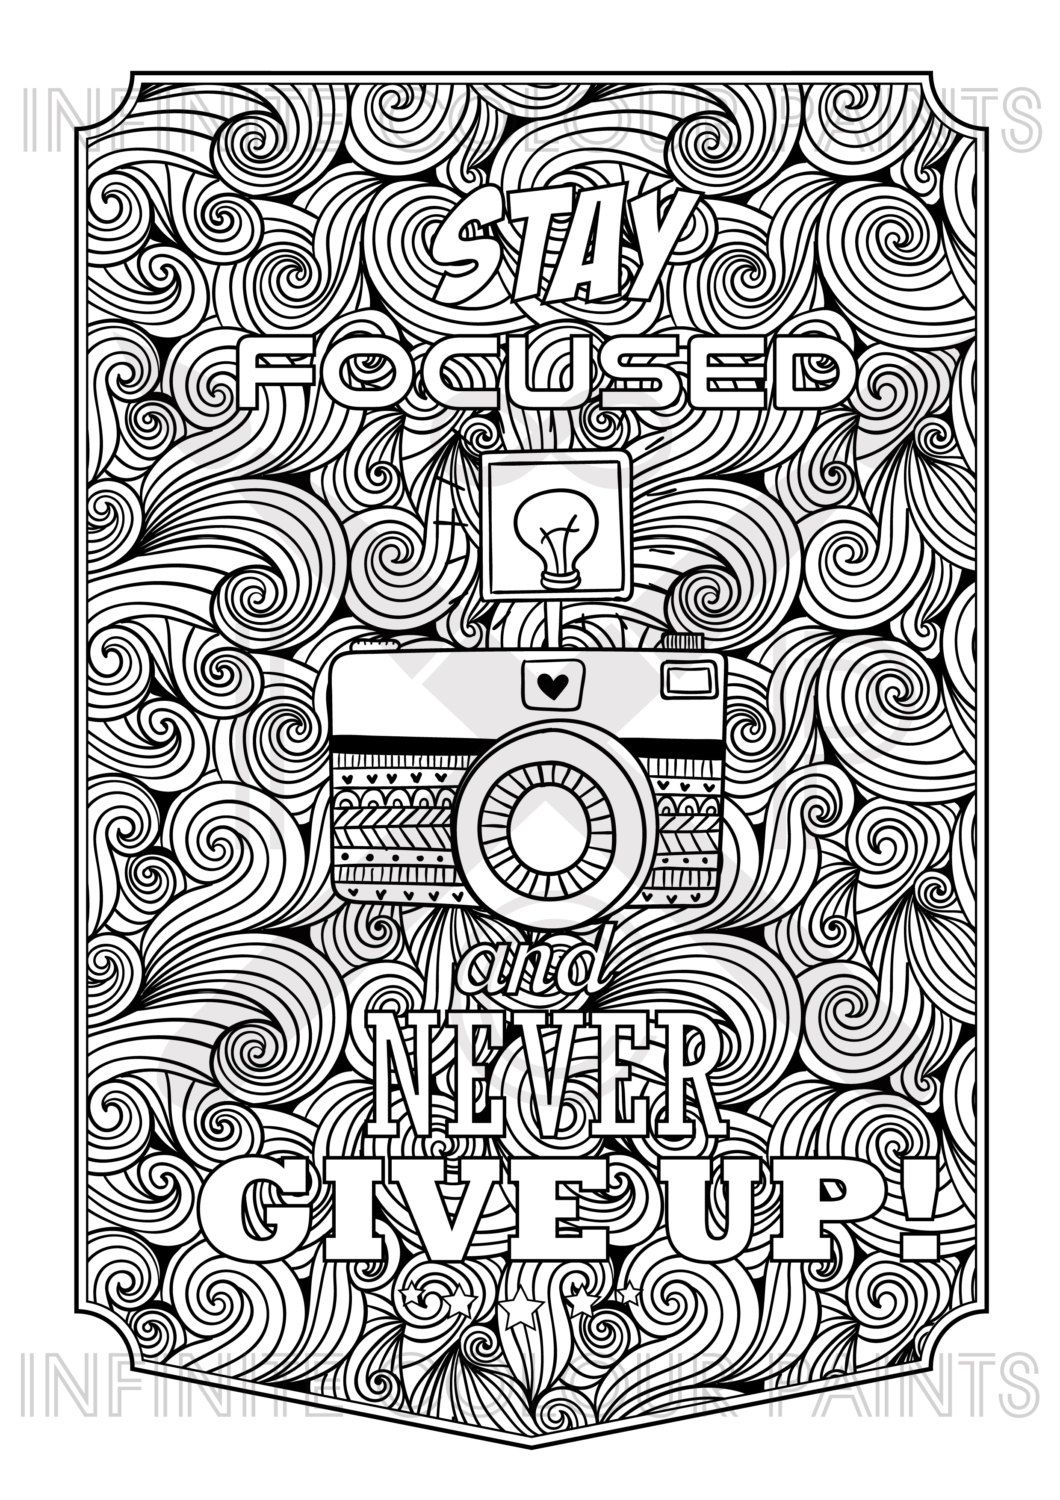 Printable coloring pages for adults with quotes - Coloring Page Adult Coloring Coloring Book Printable Coloring Page Zentangle Coloring Page Motivational Poster Motivation Quote